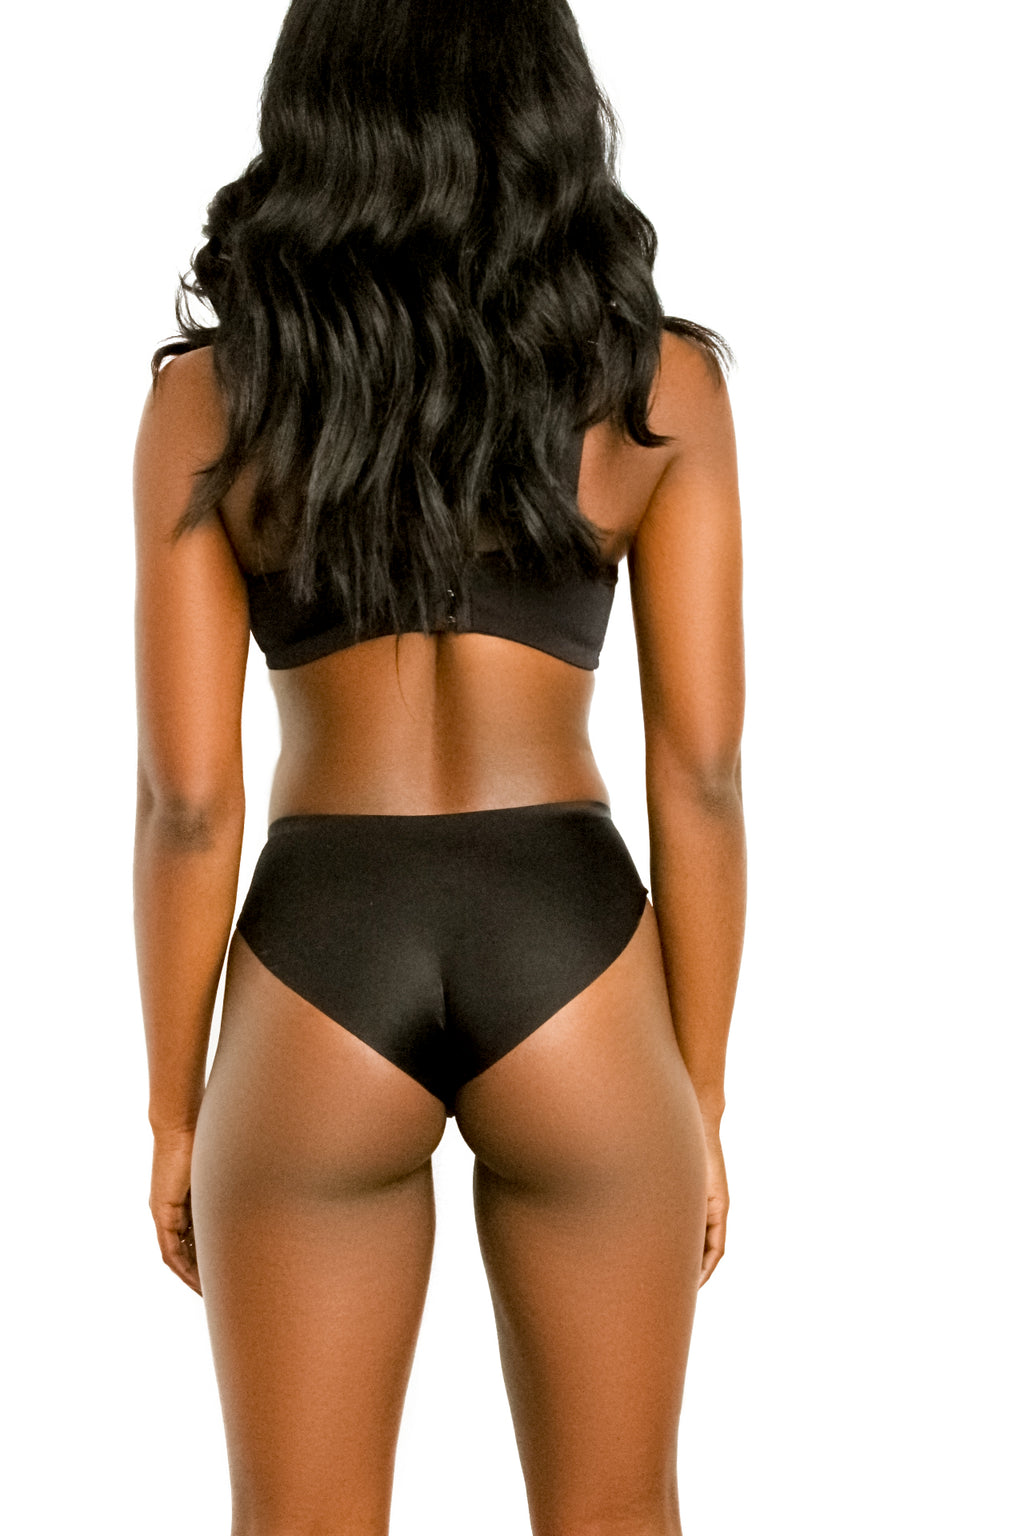 Smooth Black Panty | Fitted Spandex Panty